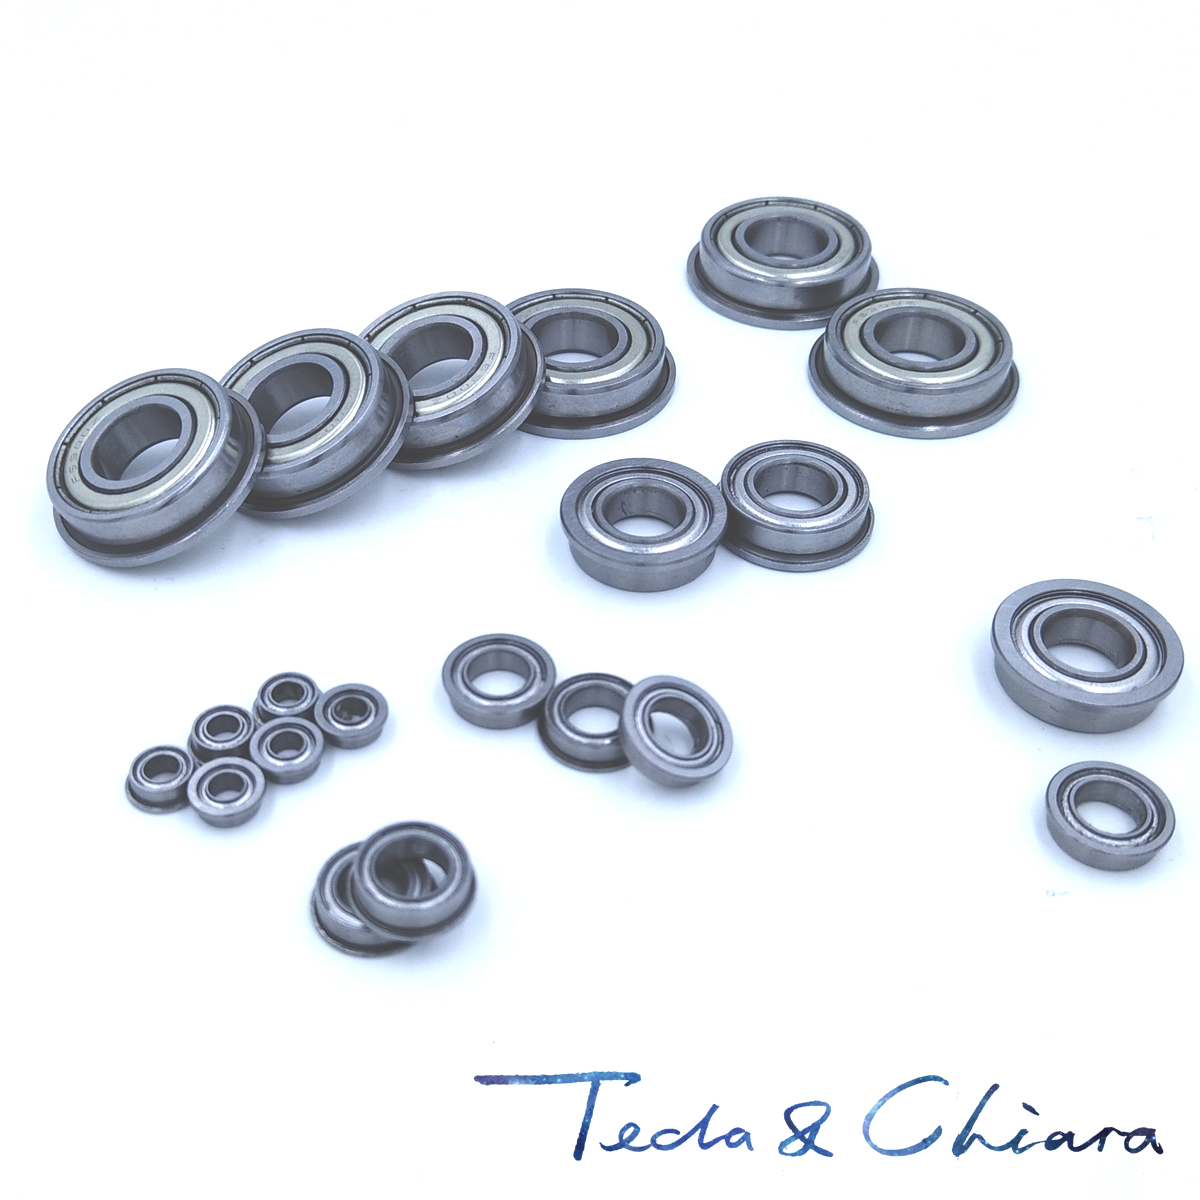 10Pcs 1Lot MF63ZZ F673 F673-ZZ F673ZZ F673-2Z F673Z Zz Z 2z MF63-ZZ MF63 Flanged Flange Deep Groove Ball Bearing 3 X 6 X 2.5mm